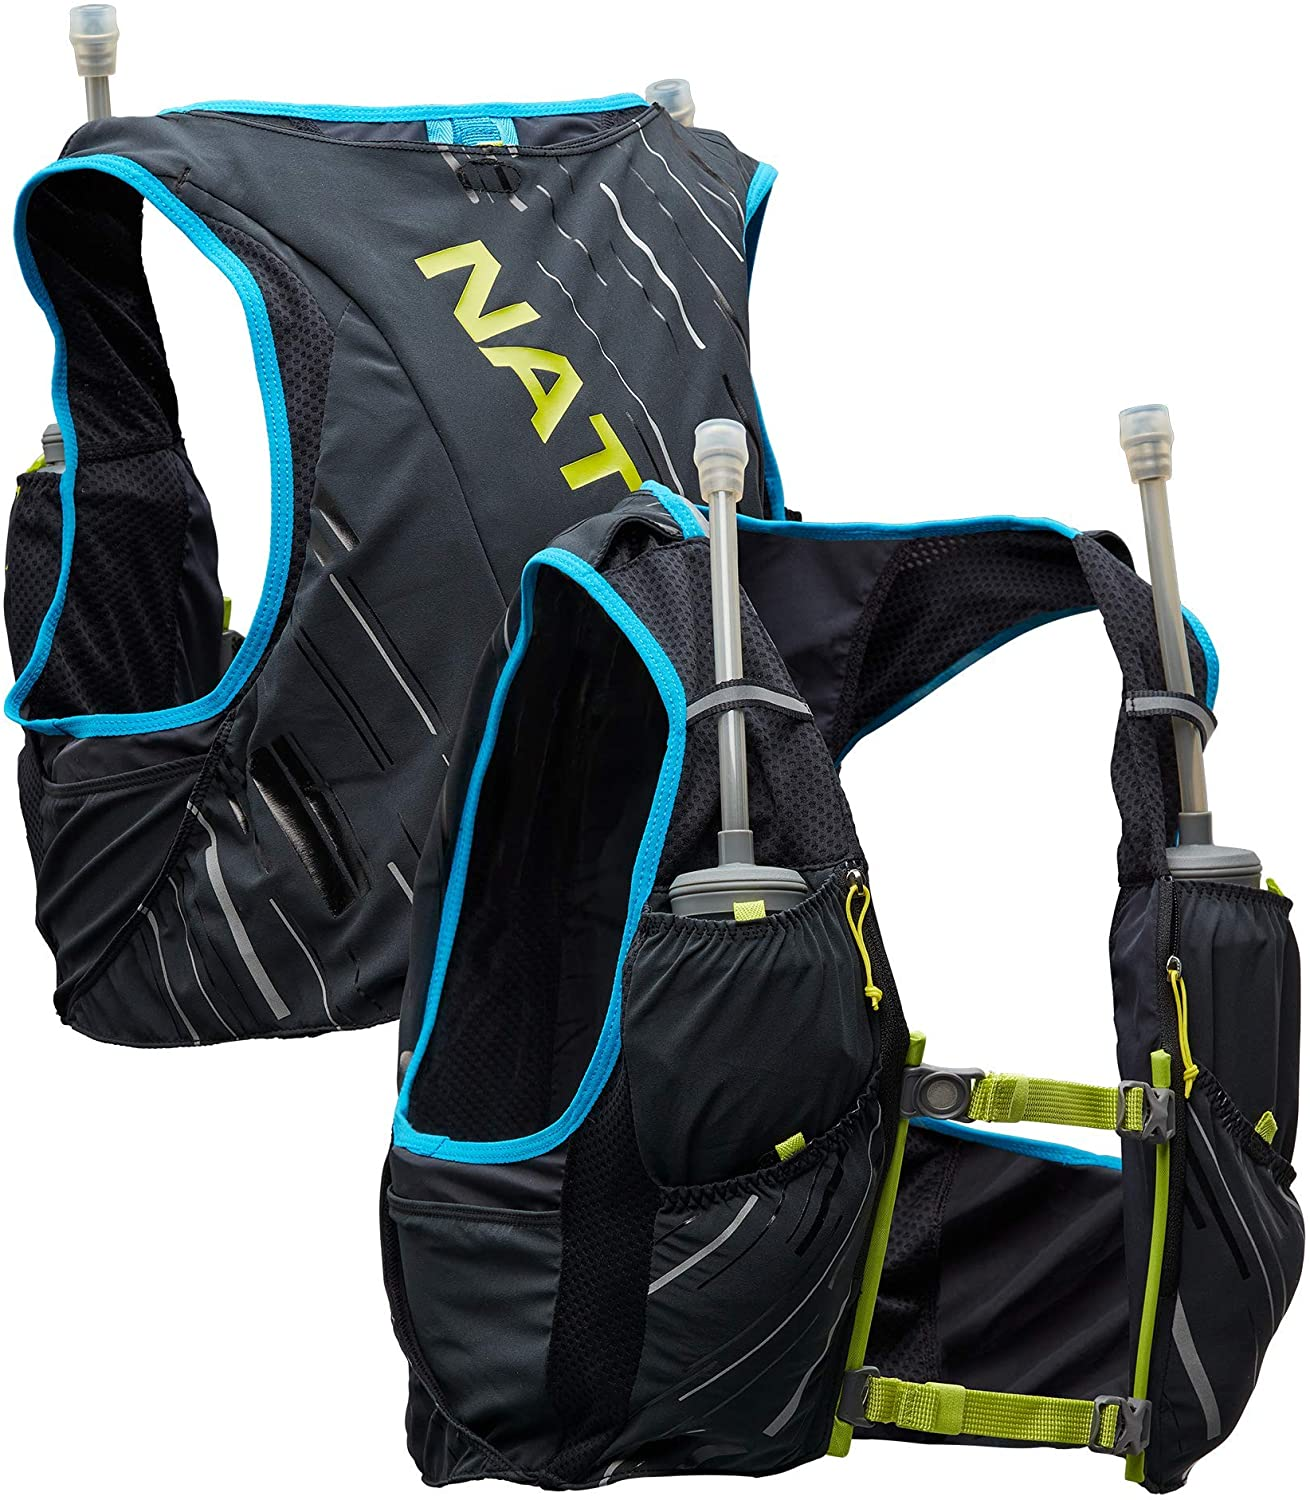 All stores are sold Nathan Pinnacle Los Angeles Mall 4L Hydration Pack Vest wit Running - Capacity